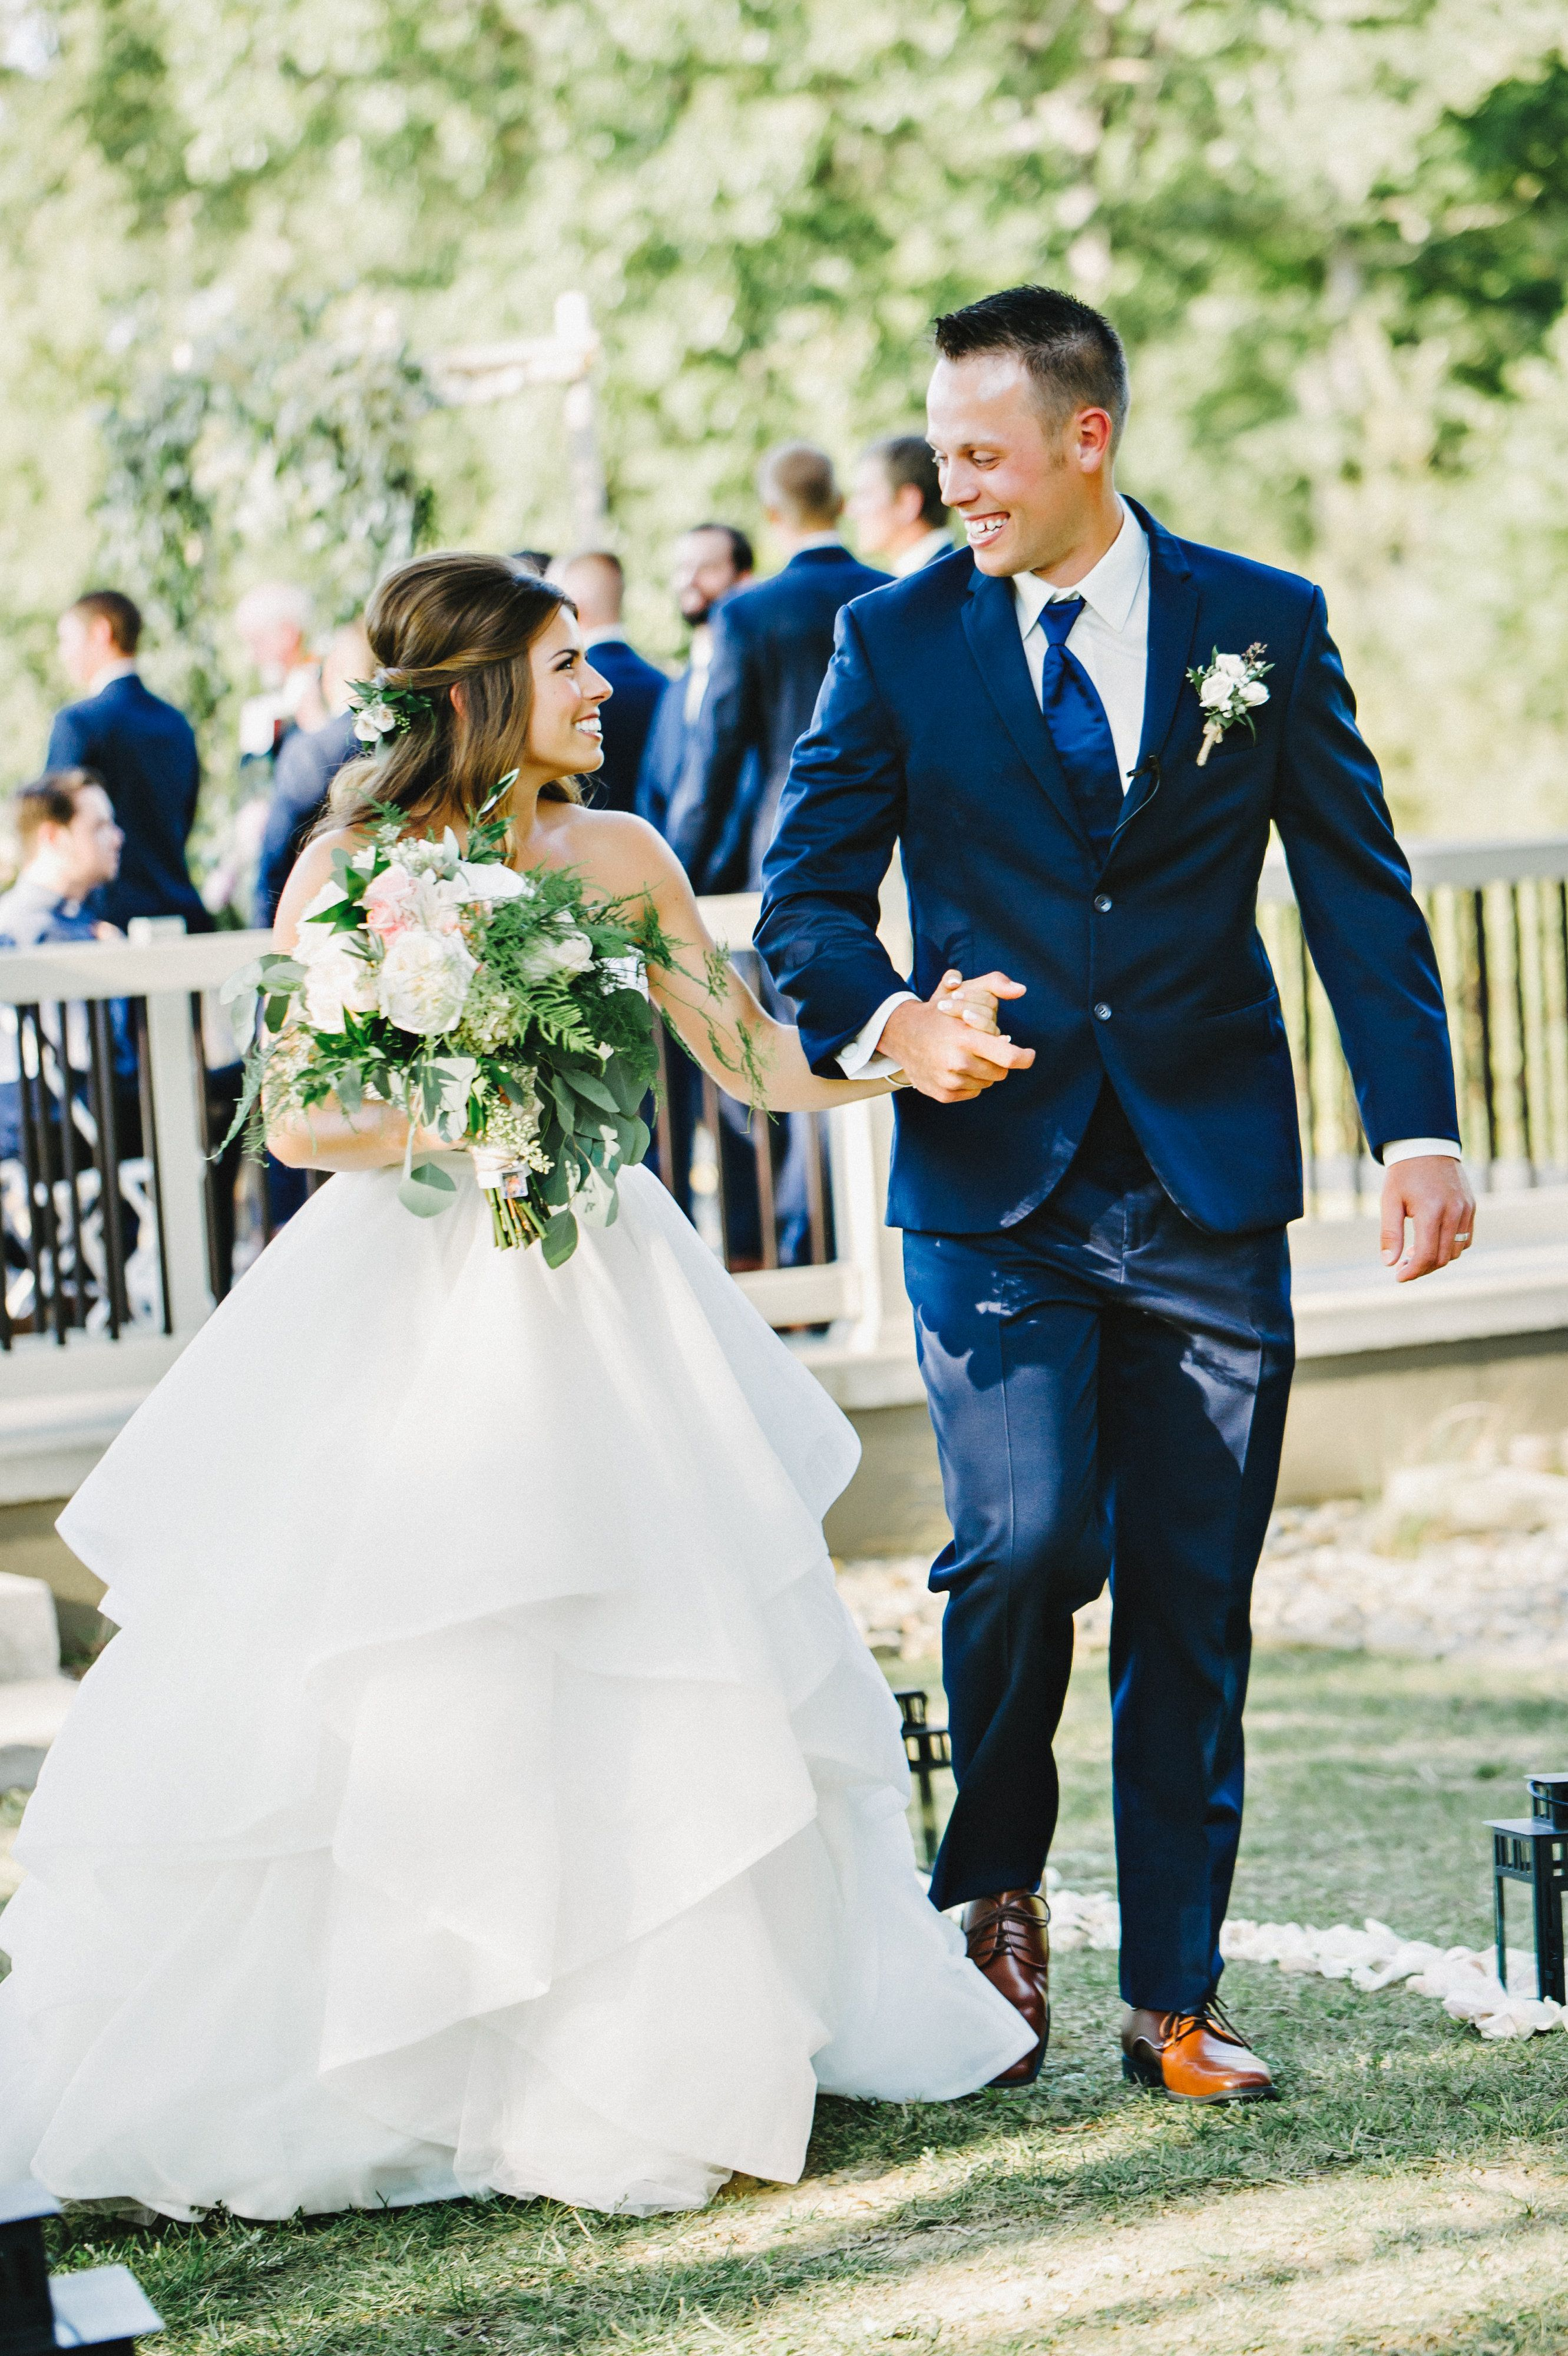 Our Third Song Pick Is Perfect By Ed Sheeran This Song Reminds Your Special Someone That They Re Perfect Just The Wa Firefly Wedding Wedding Dresses Wedding